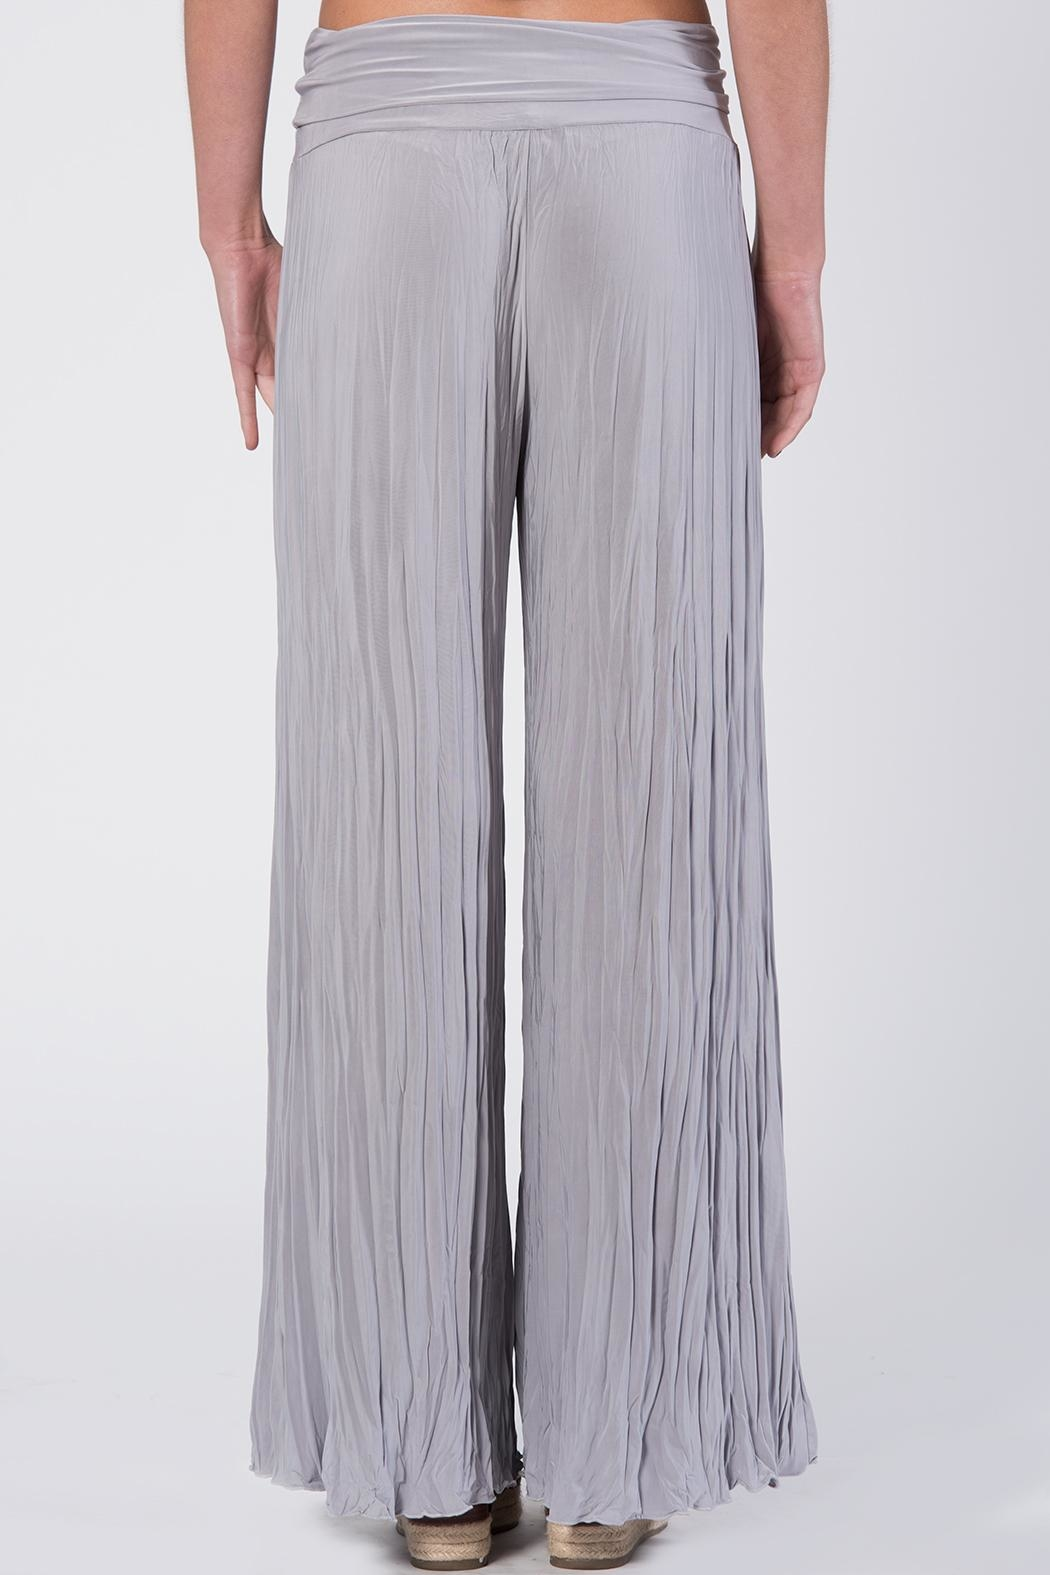 Apparel Love Silver Grey Crinkle Pants - Front Full Image